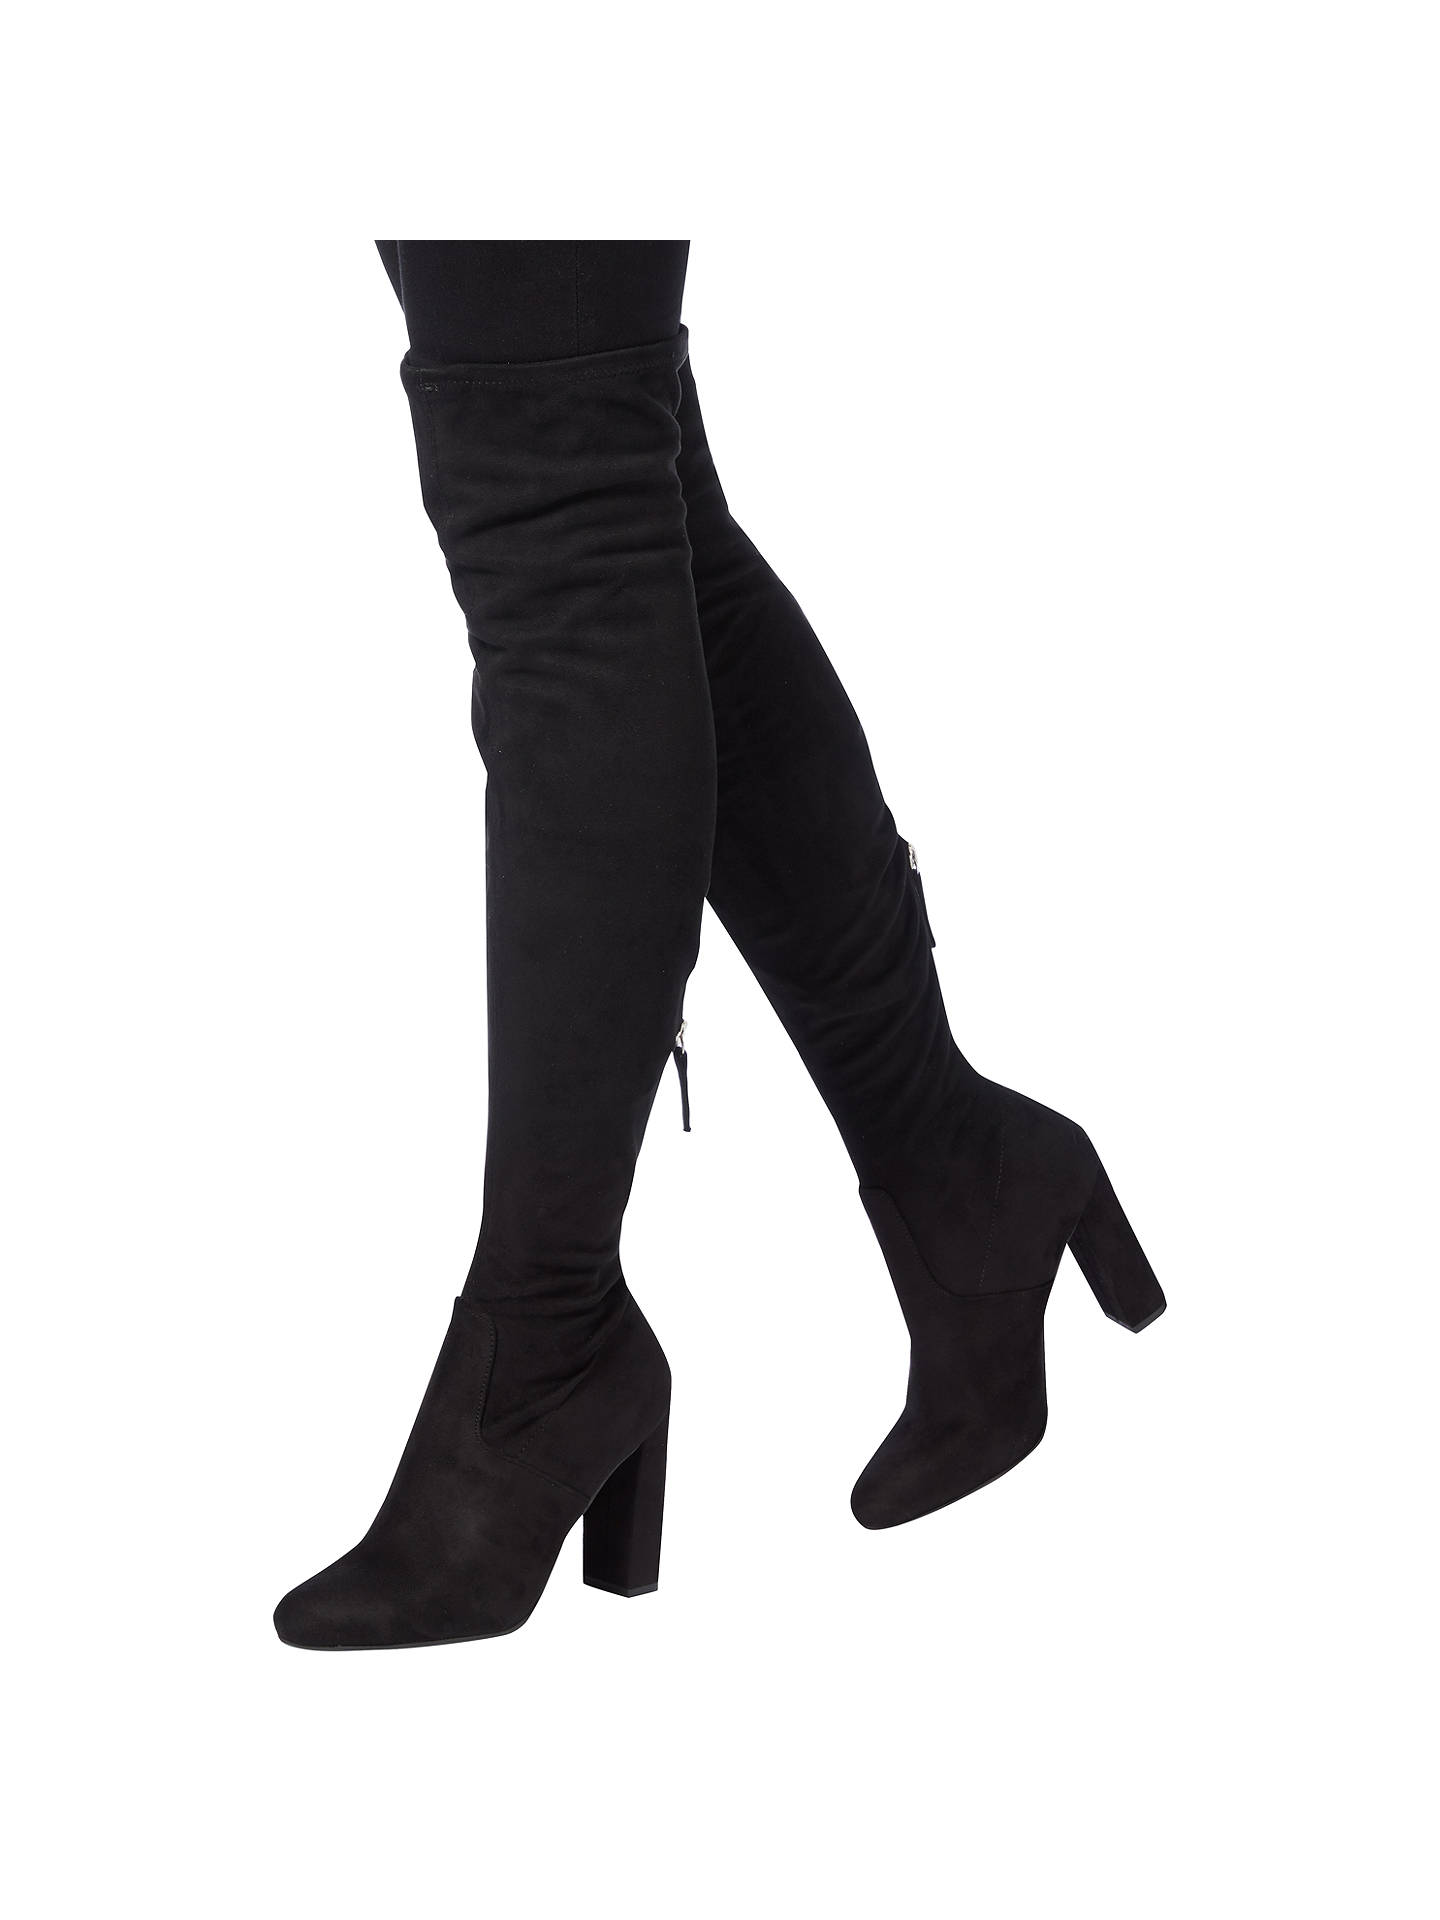 5ba985136fc ... Buy Steve Madden Emotions Block Heeled Over the Knee Boots